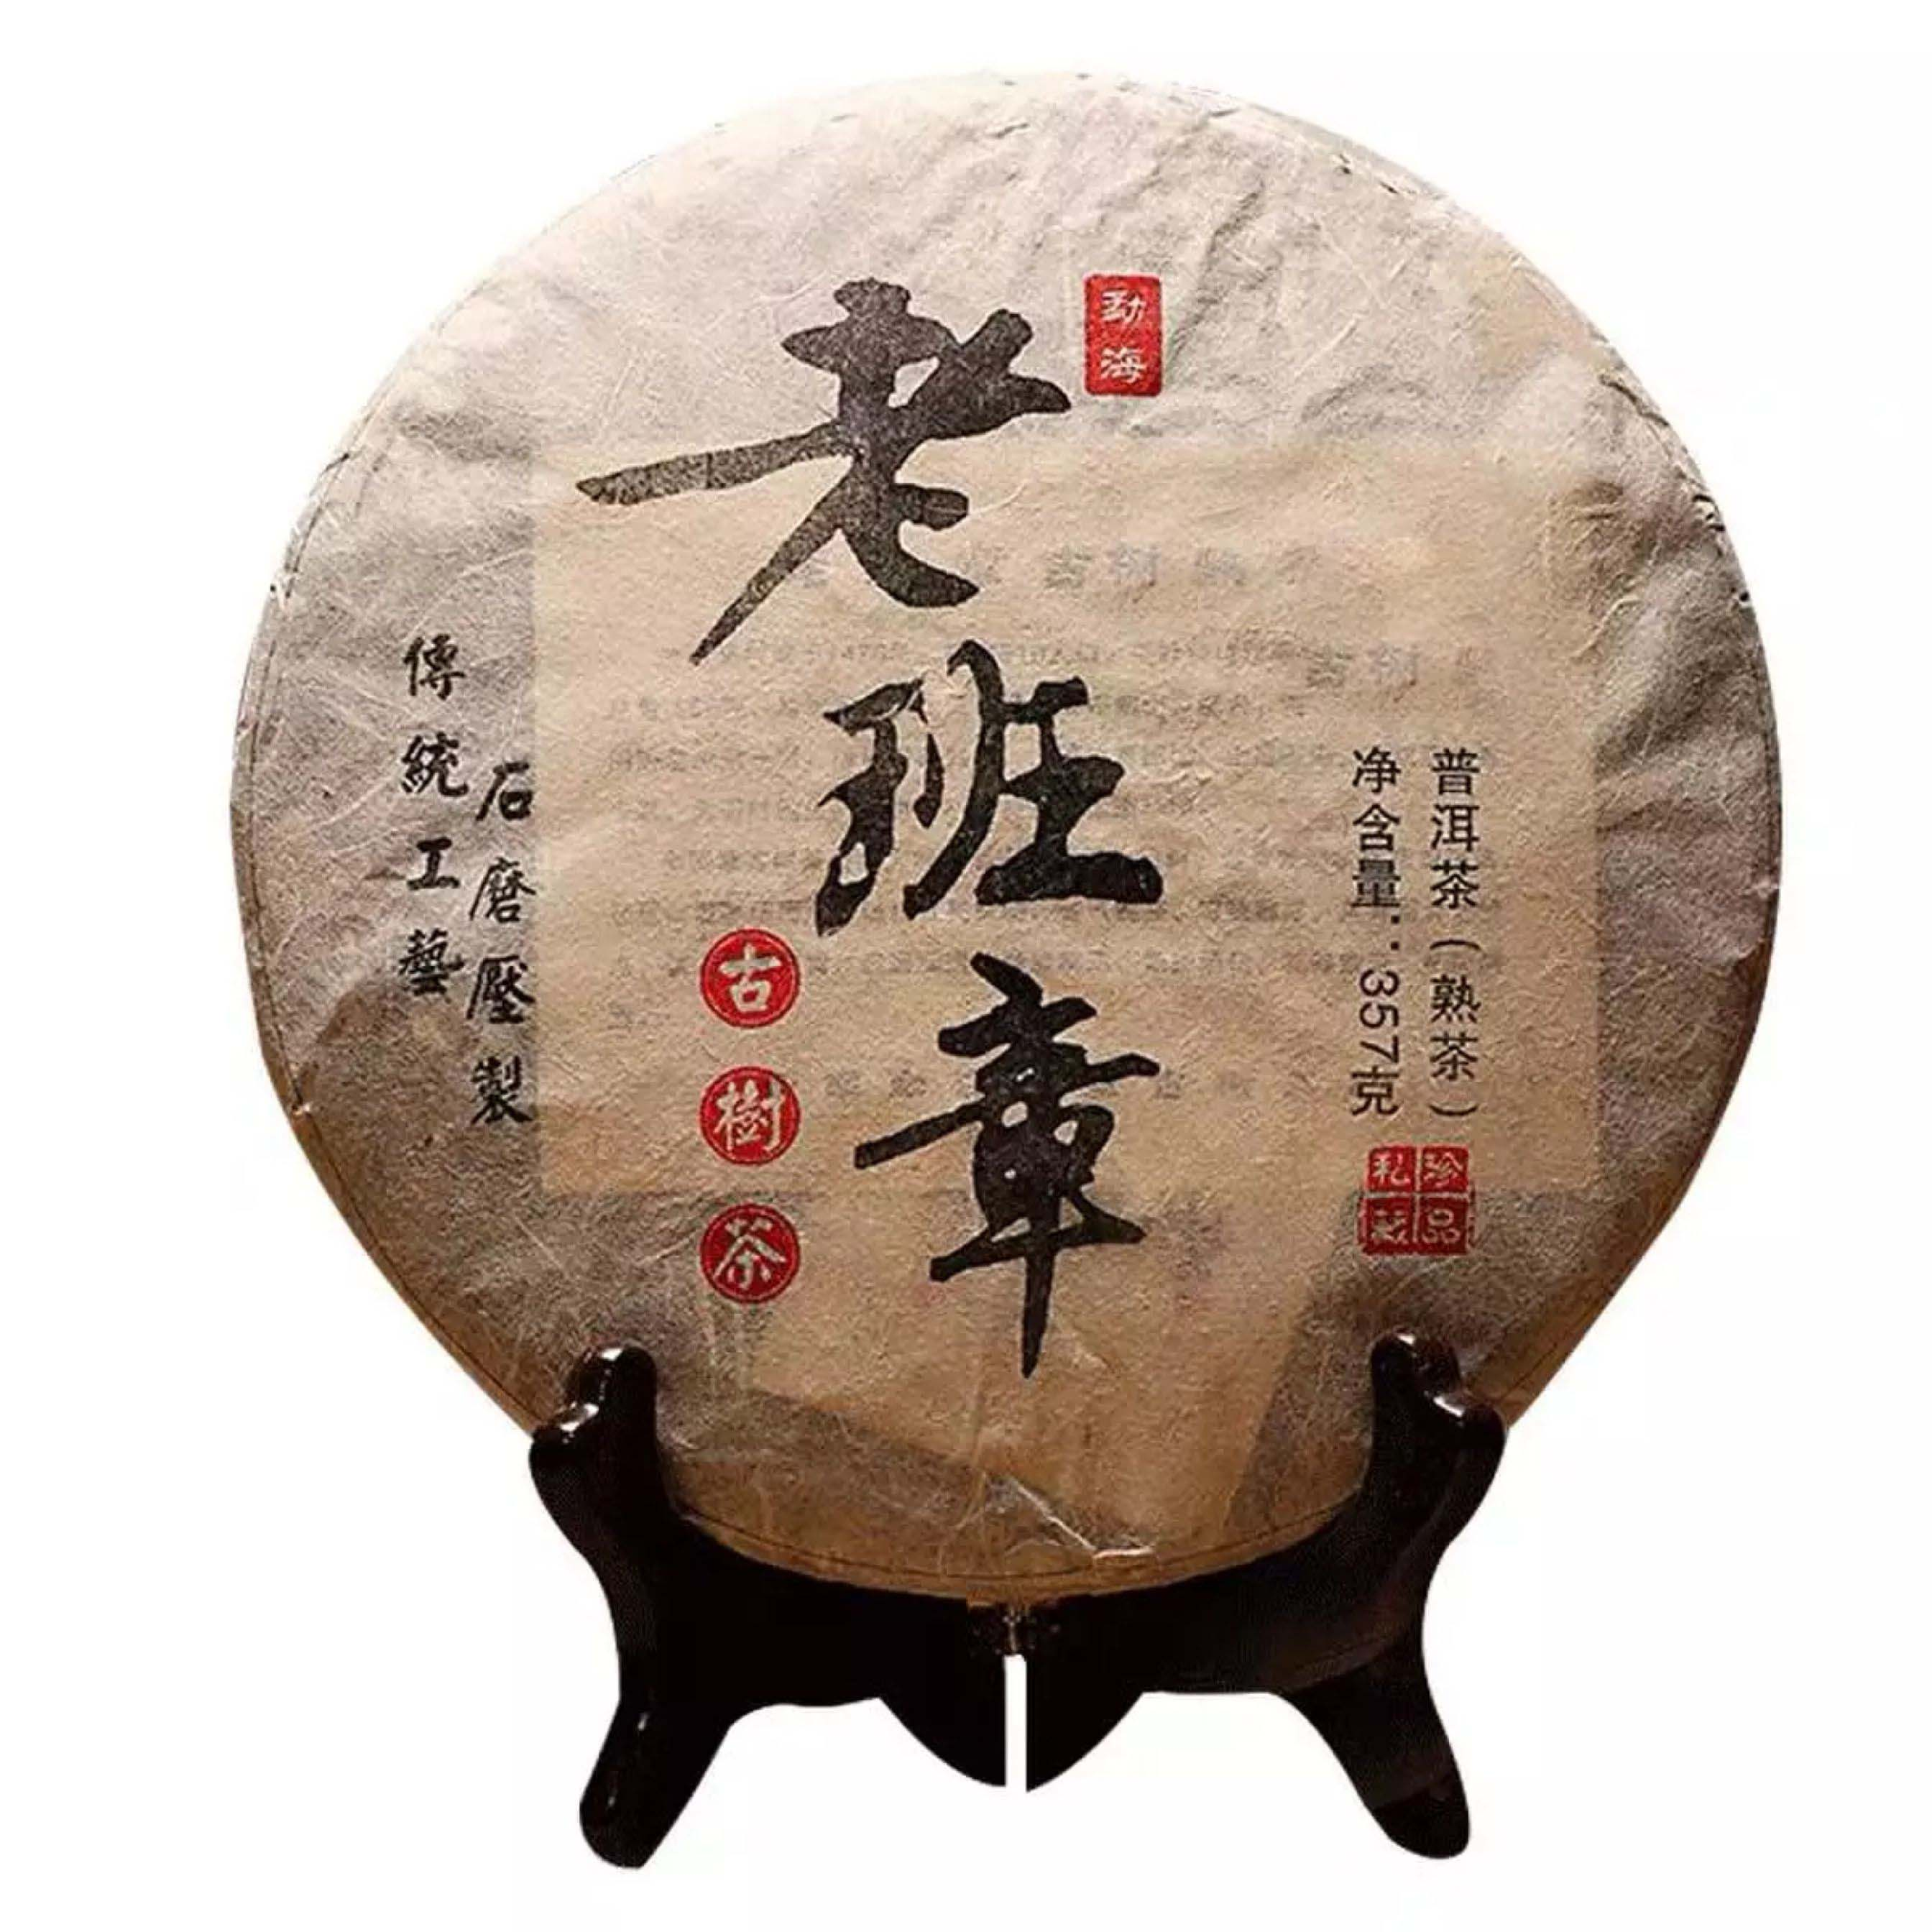 Miaoxiang Yunnan Pu'er Tea Cooked Tea Golden Bud Gong Cake Menghai Old Banzhang 300 Years Old Tree Tea Cake 357 grams